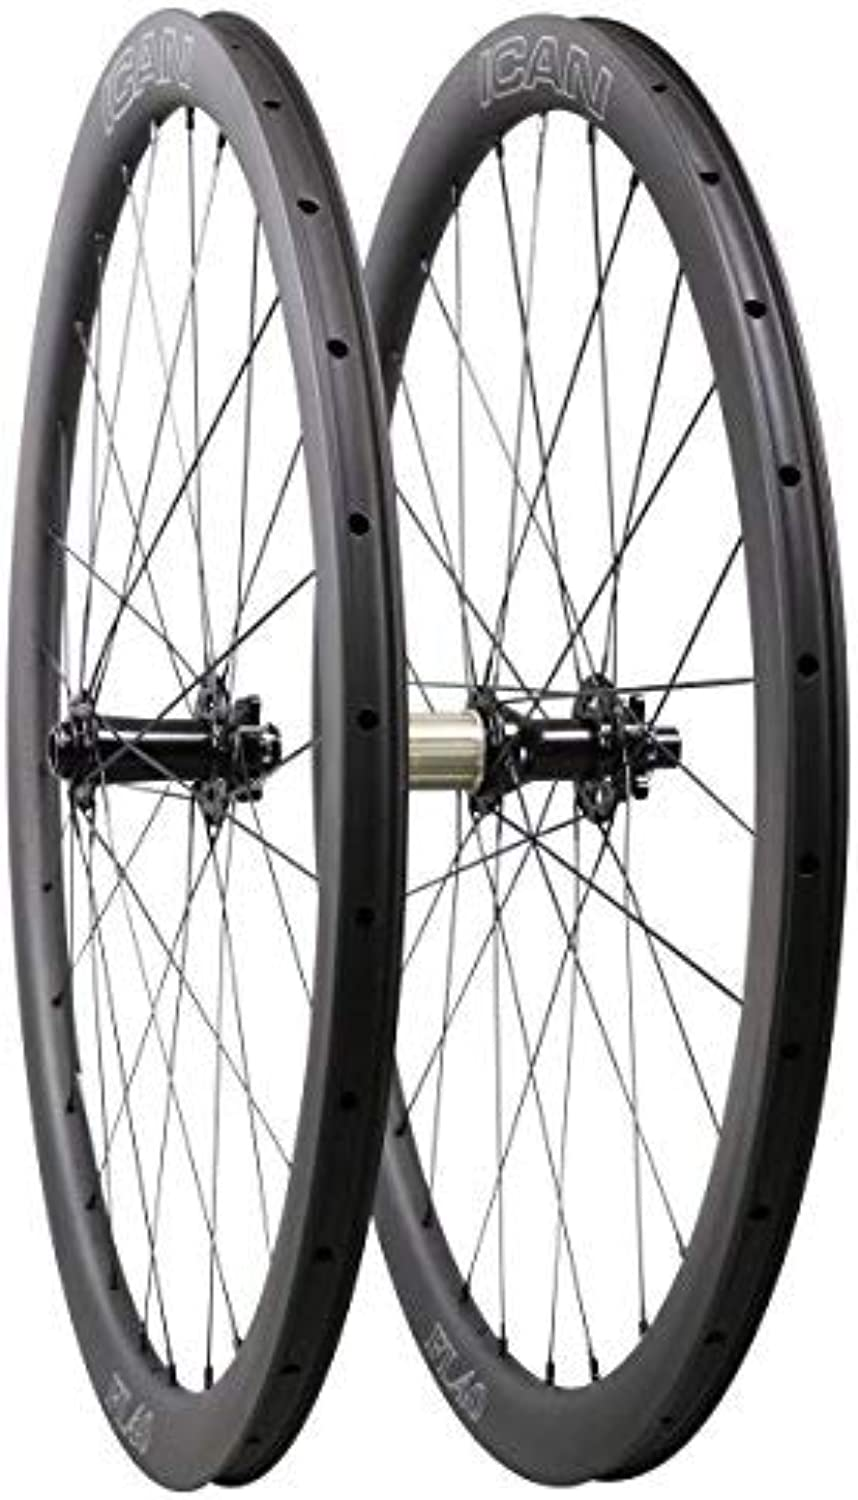 ICAN Carbon Cyclocross Bike Wheels Disc Brake 40mm Clincher Tubeless Ready 12x100mm 12x142mm Shimano 10 11 Speed 1550g